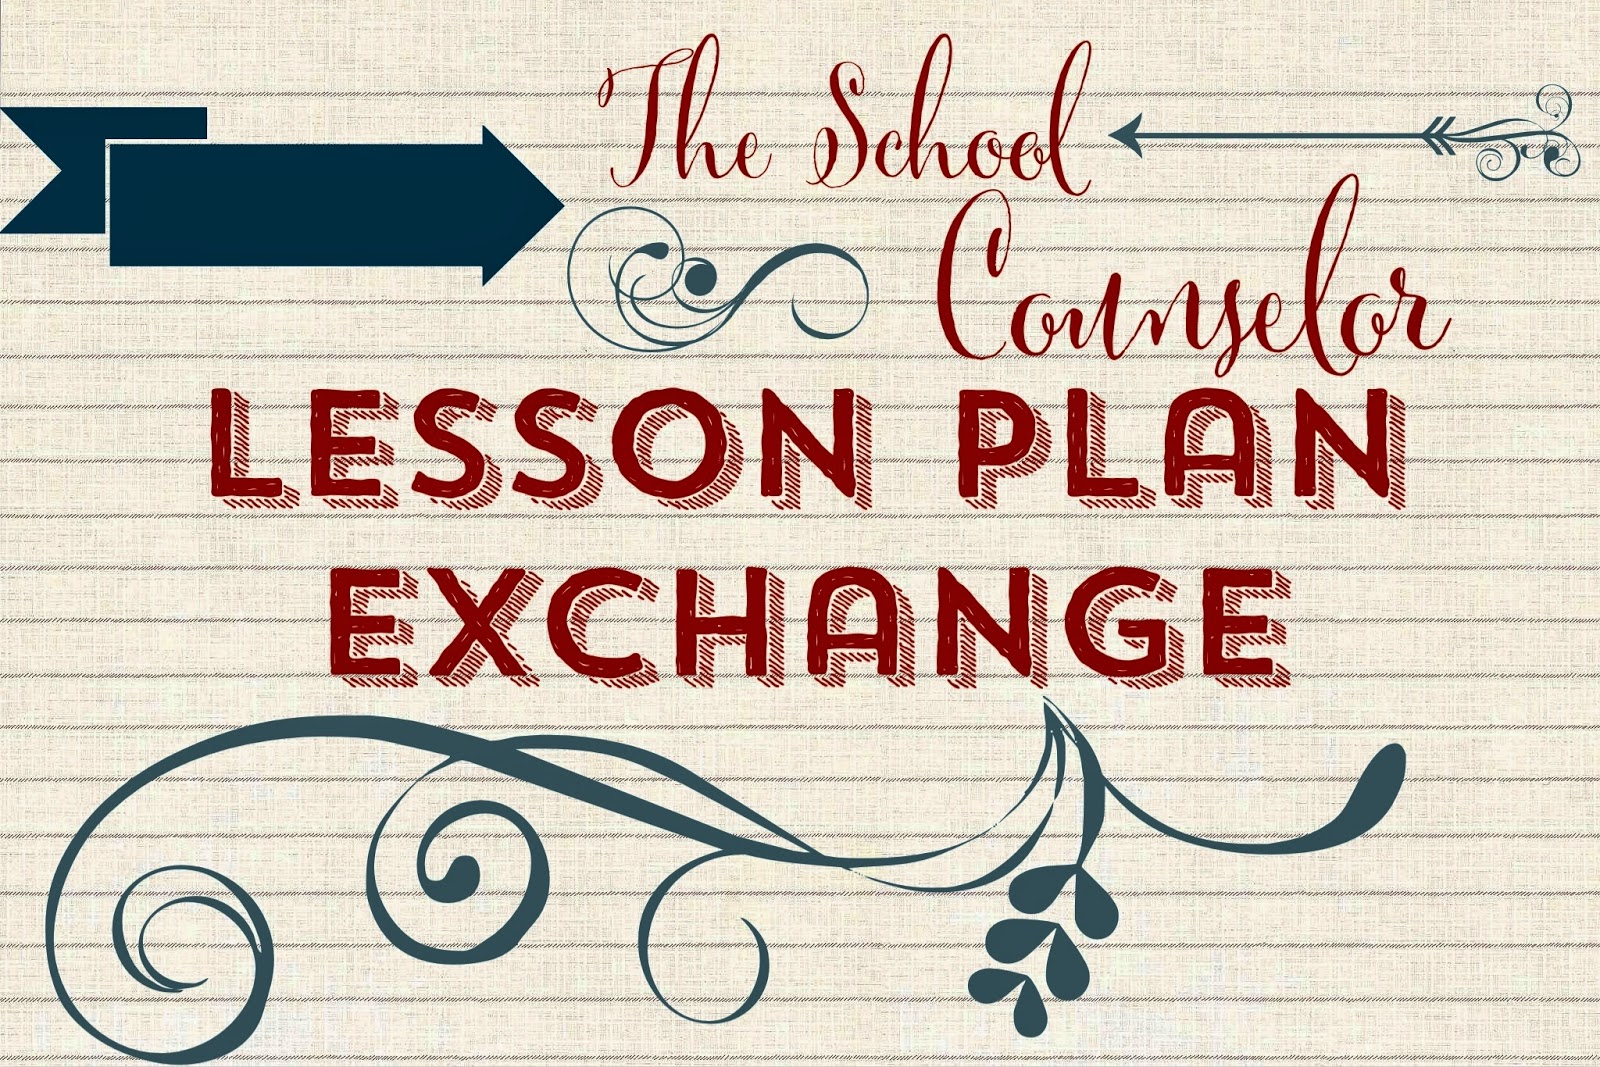 Join In The Latest Lesson Plan Exchange The Middle School Counselor - School counselor lesson plan template